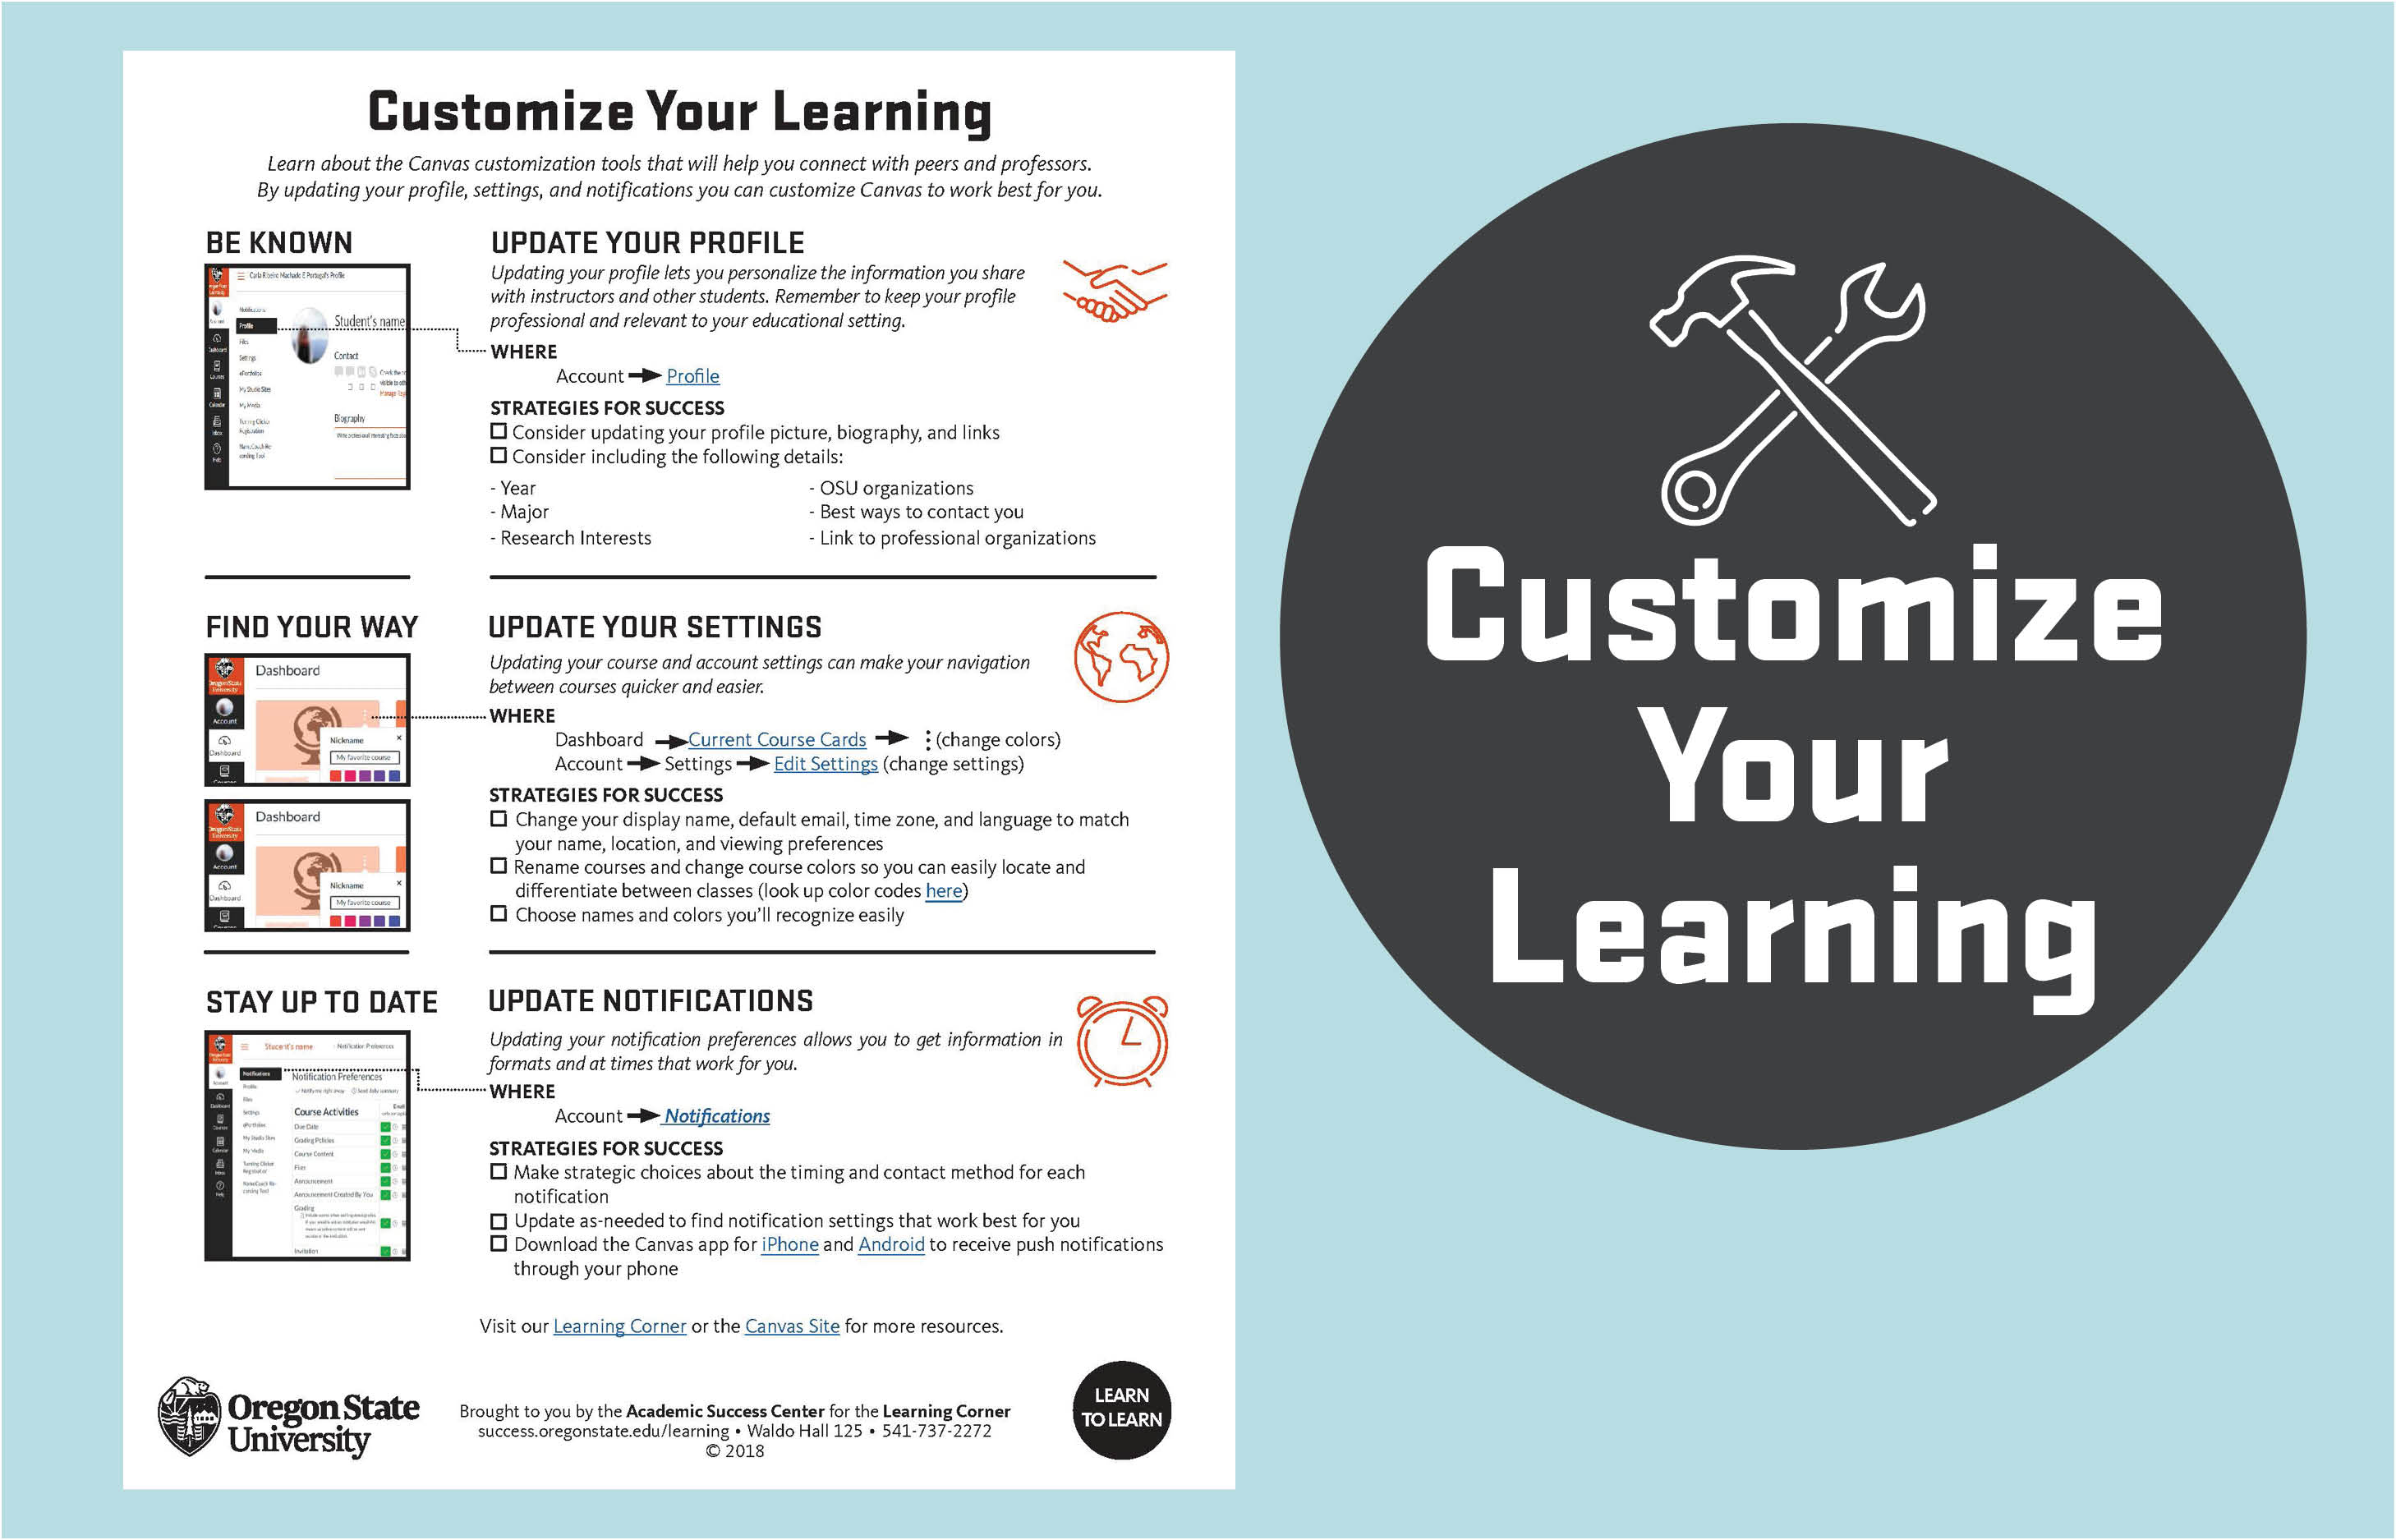 Customize Your Learning